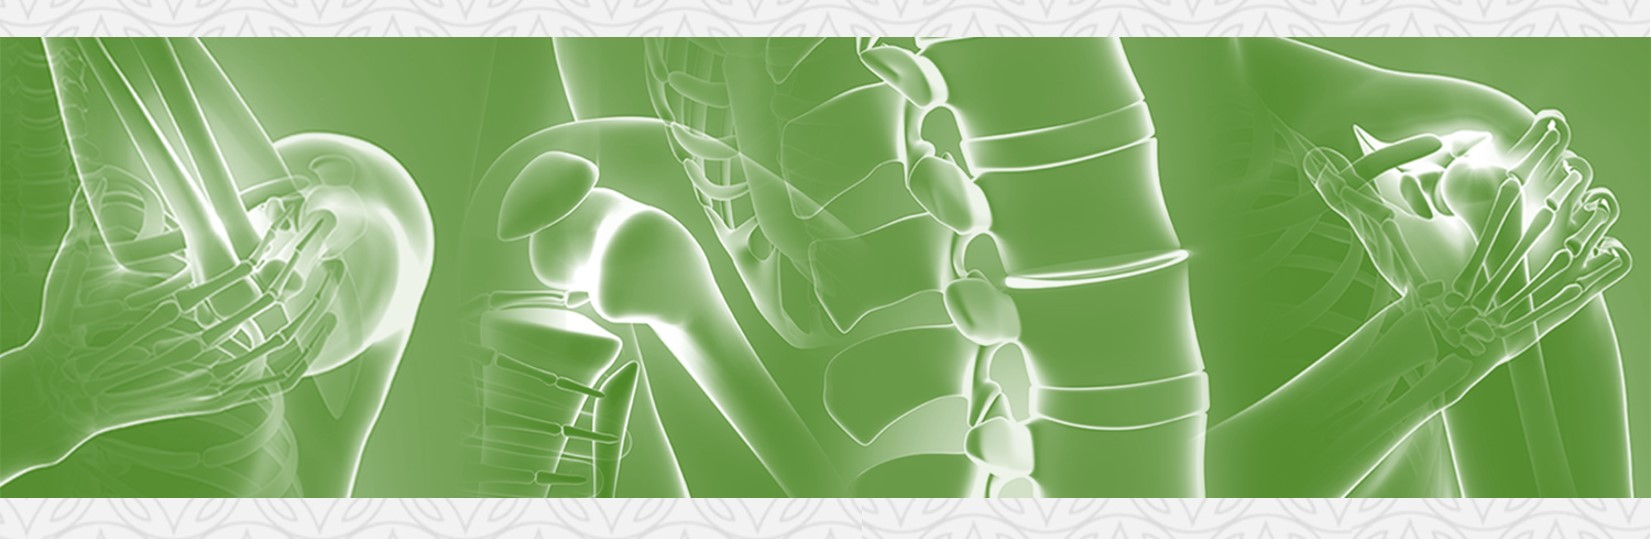 Services for musculoskeletal malignant and benign conditions